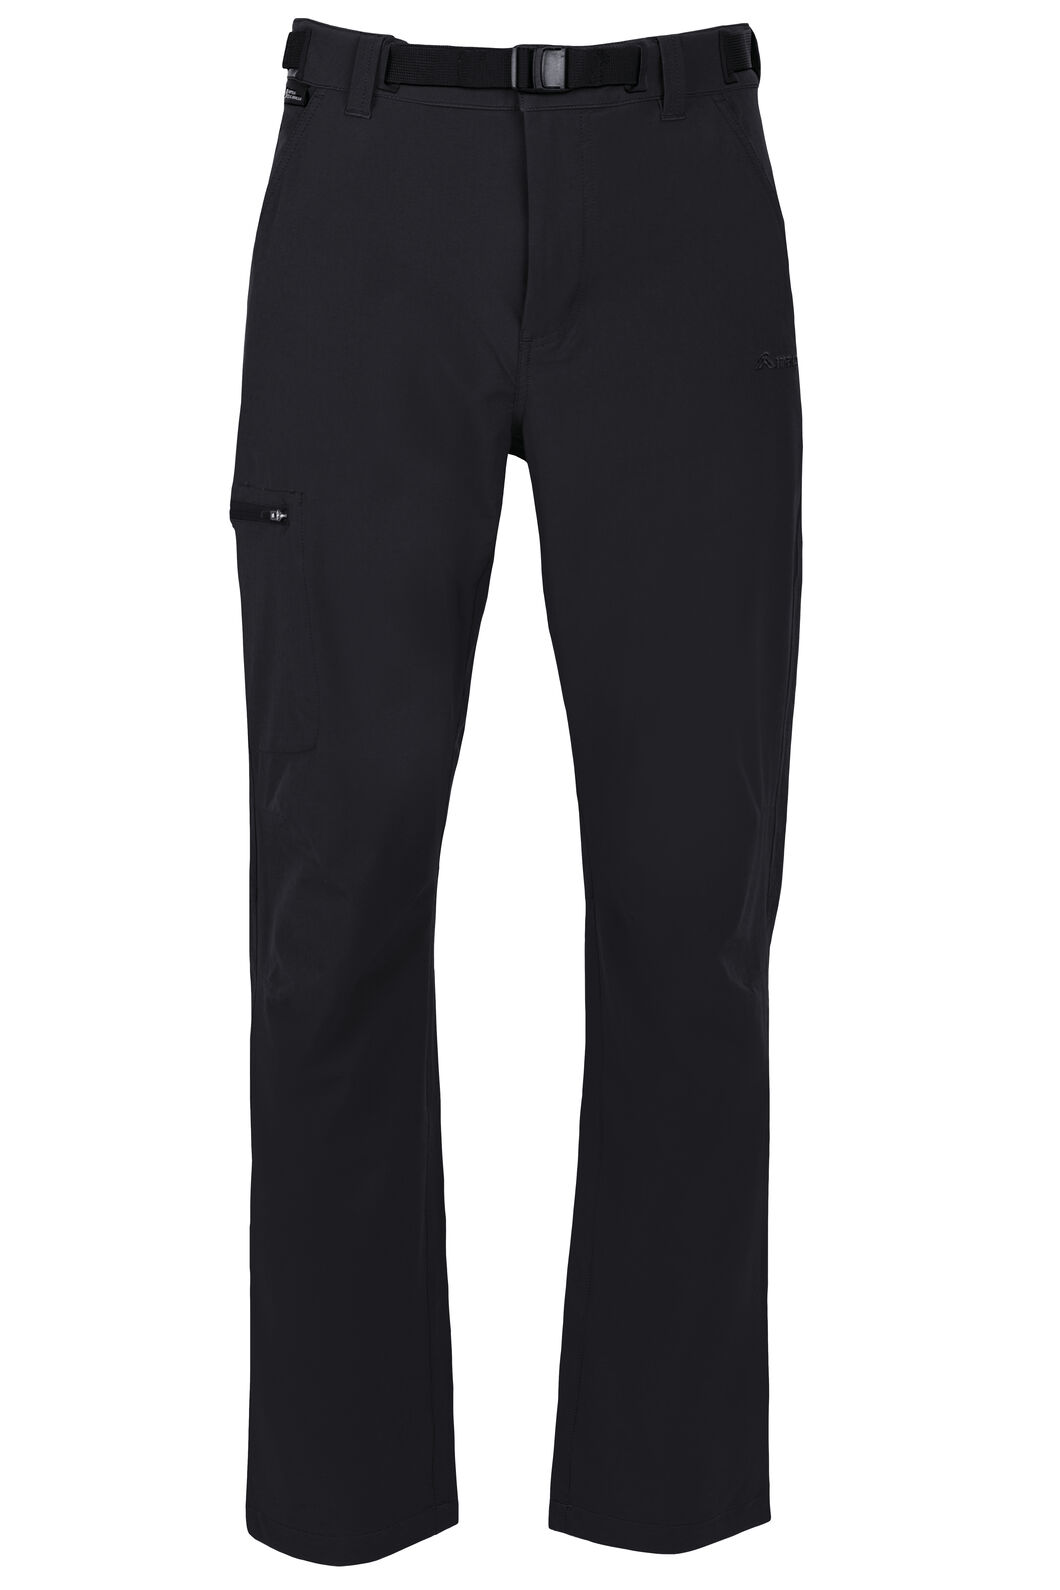 Trekker Pertex Equilibrium® Softshell Pants - Men's, Black, hi-res